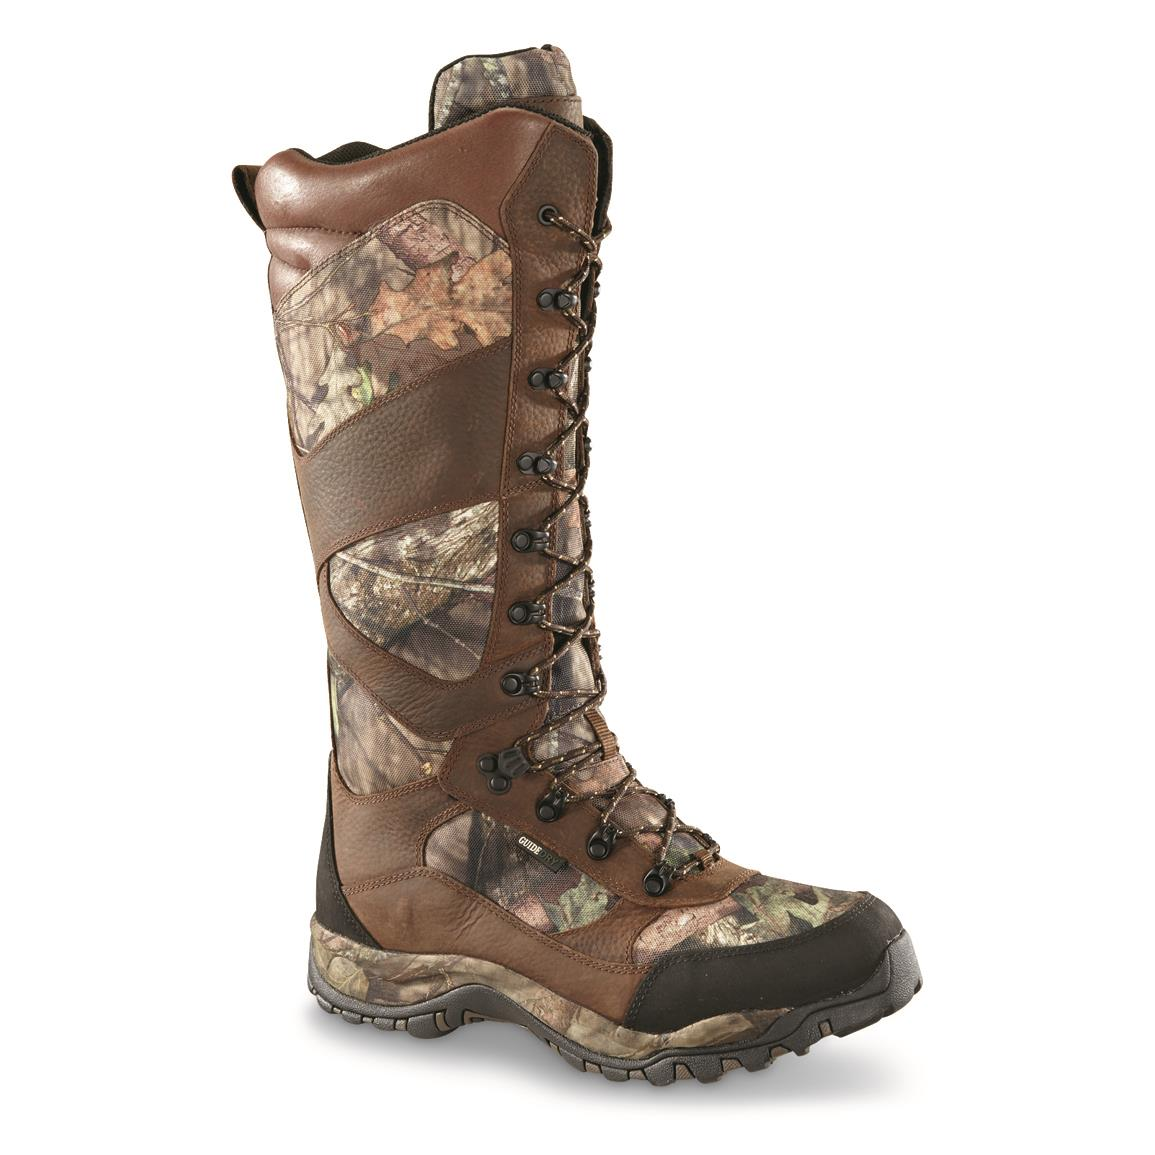 "Guide Gear Mens Pursuit II Camo 16"" Snake Boots, Mossy Oak Break-Up Country, Waterproof, Side Zip  • Snake Guard fabric provides reliable protection from aggressive snakes"